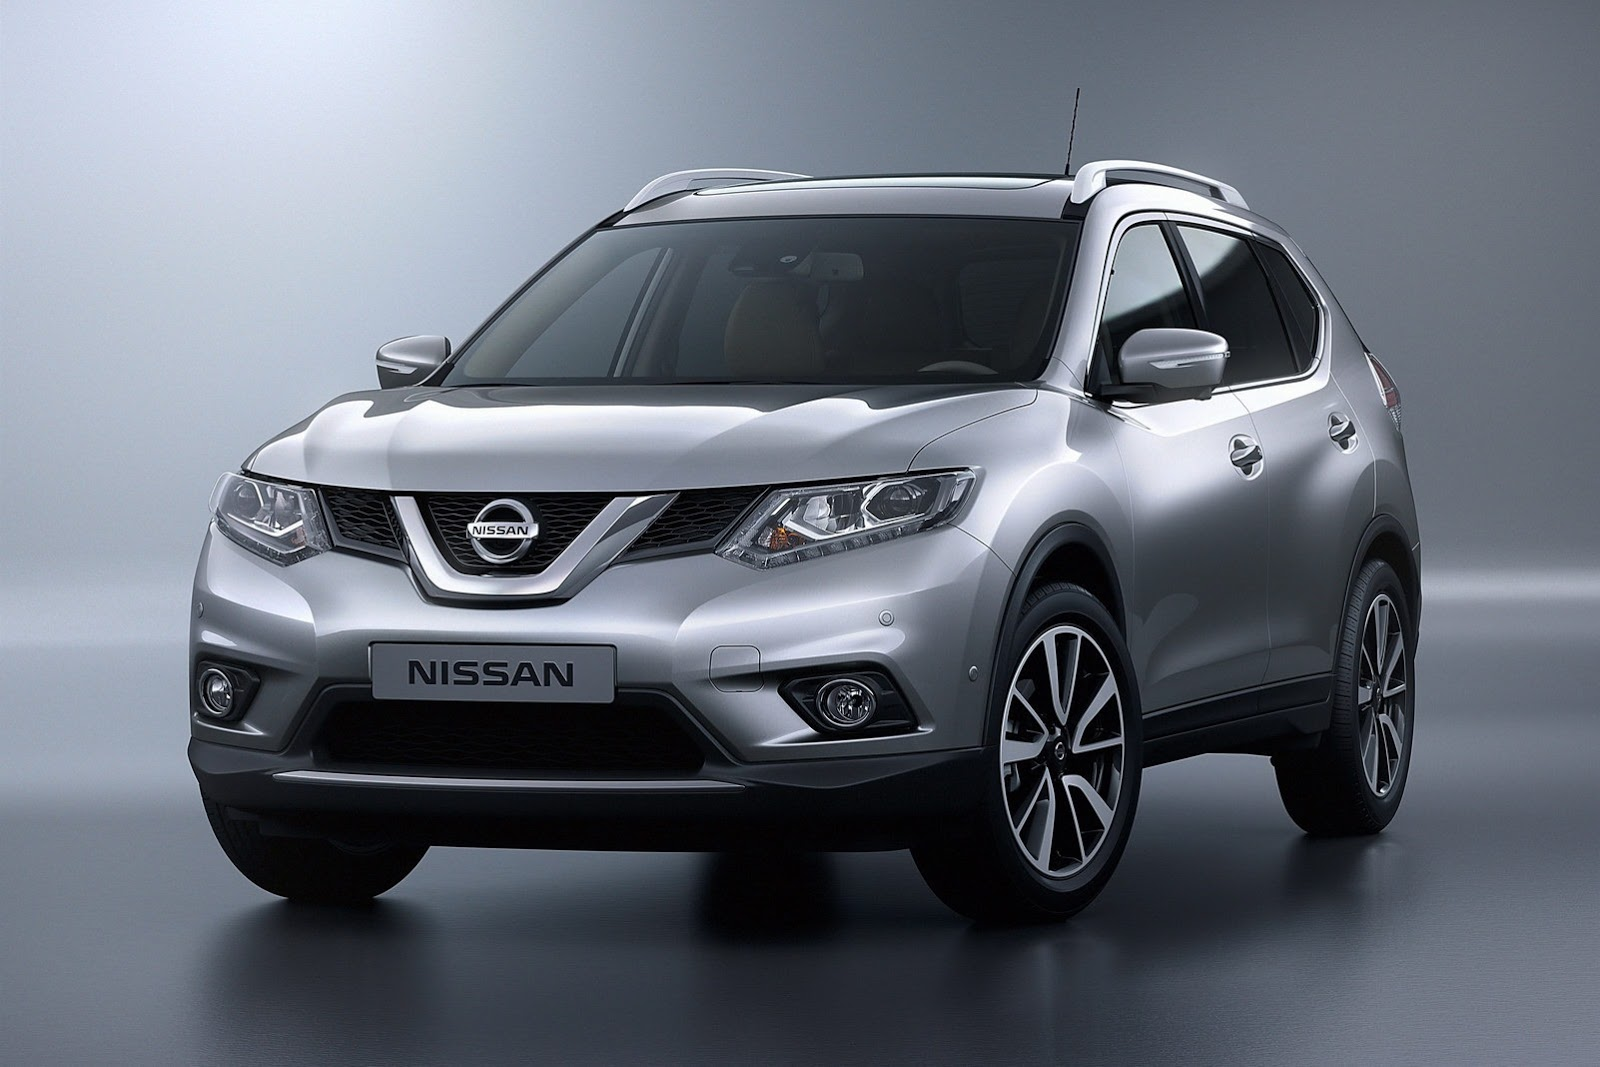 malaysia motoring news 2014 nissan x trail gets sleeker. Black Bedroom Furniture Sets. Home Design Ideas